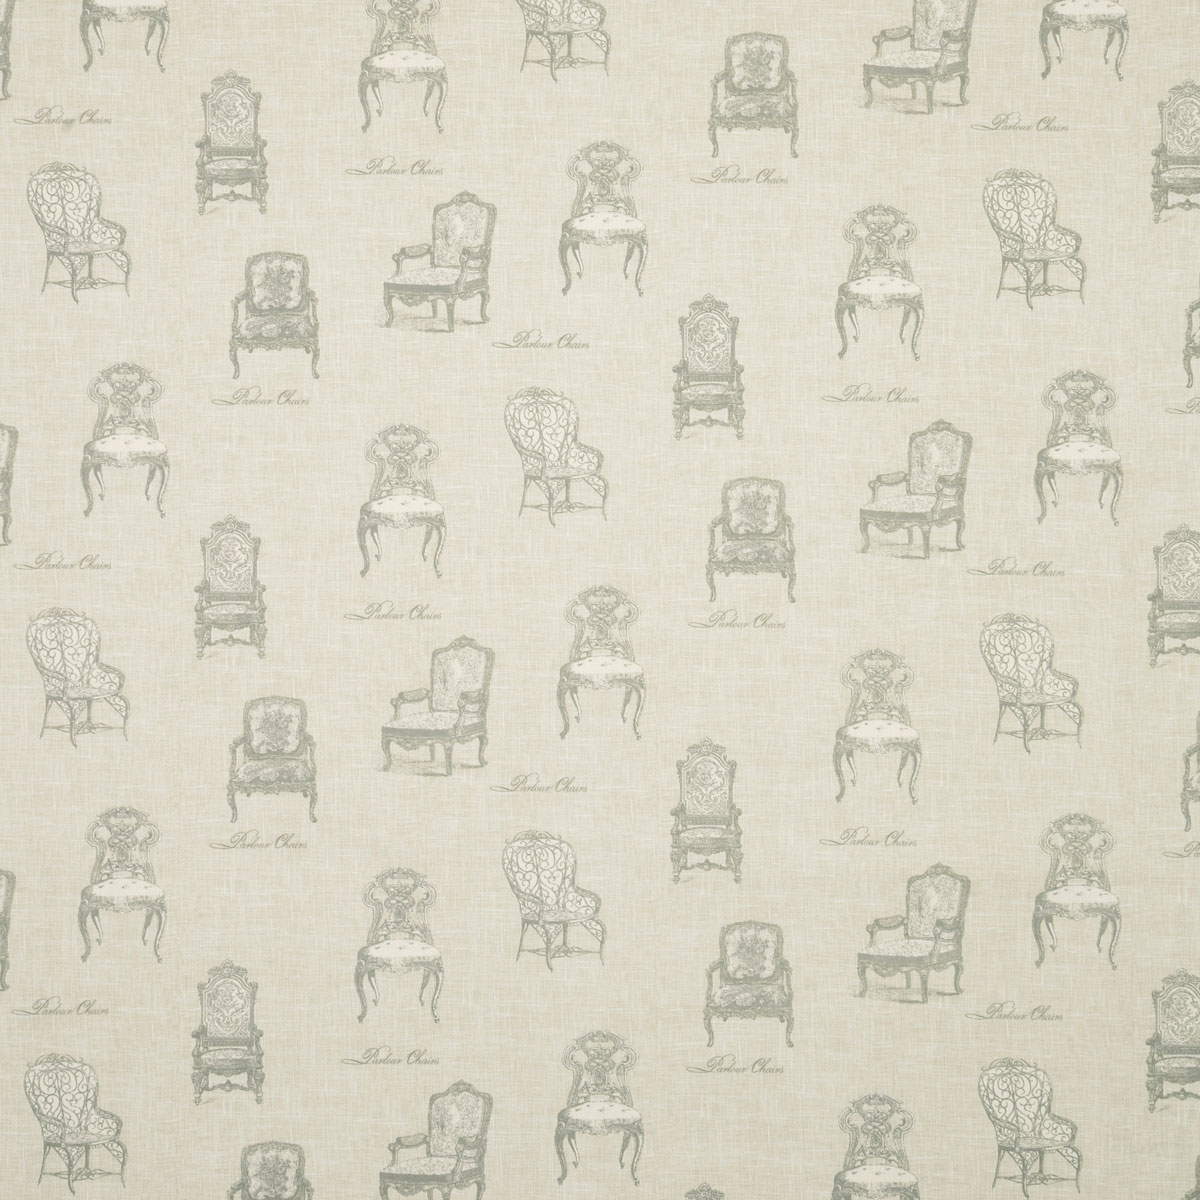 Charcoal Vintage Chairs Curtain Fabric